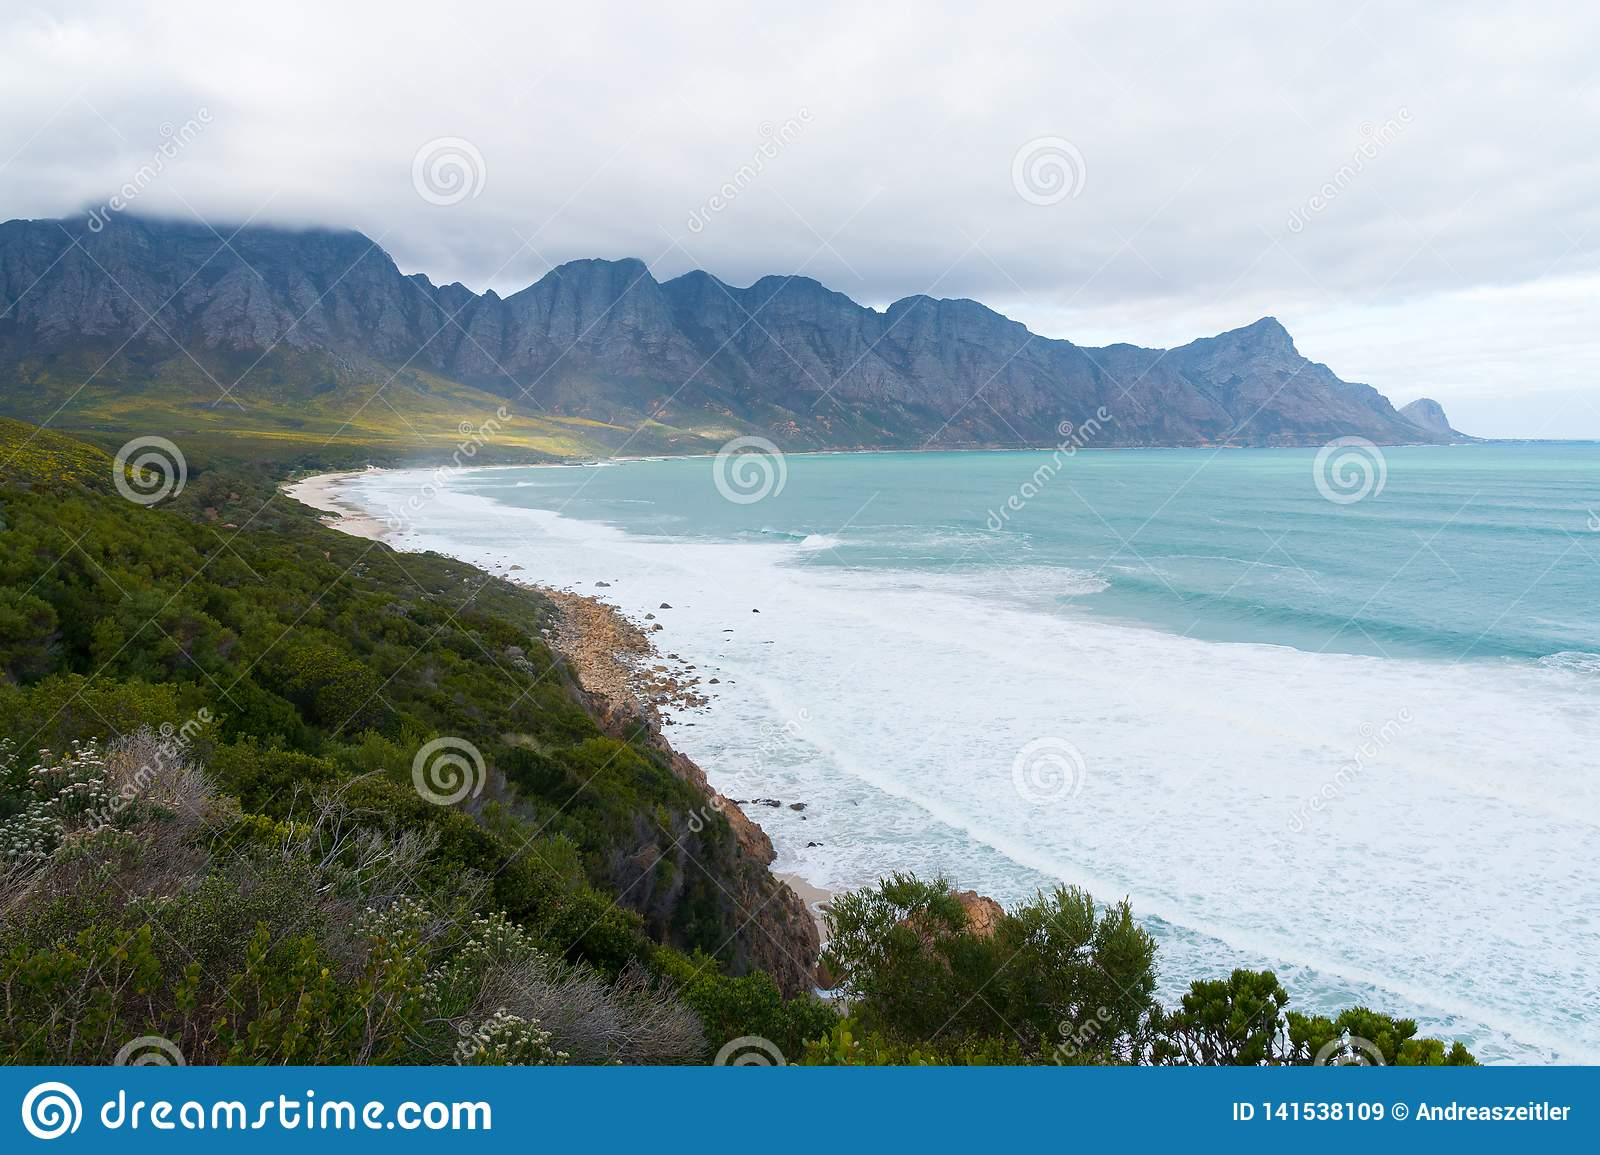 Kogel Bay Beach, located along Route 44 in the eastern part of False Bay near Cape Town, South Africa